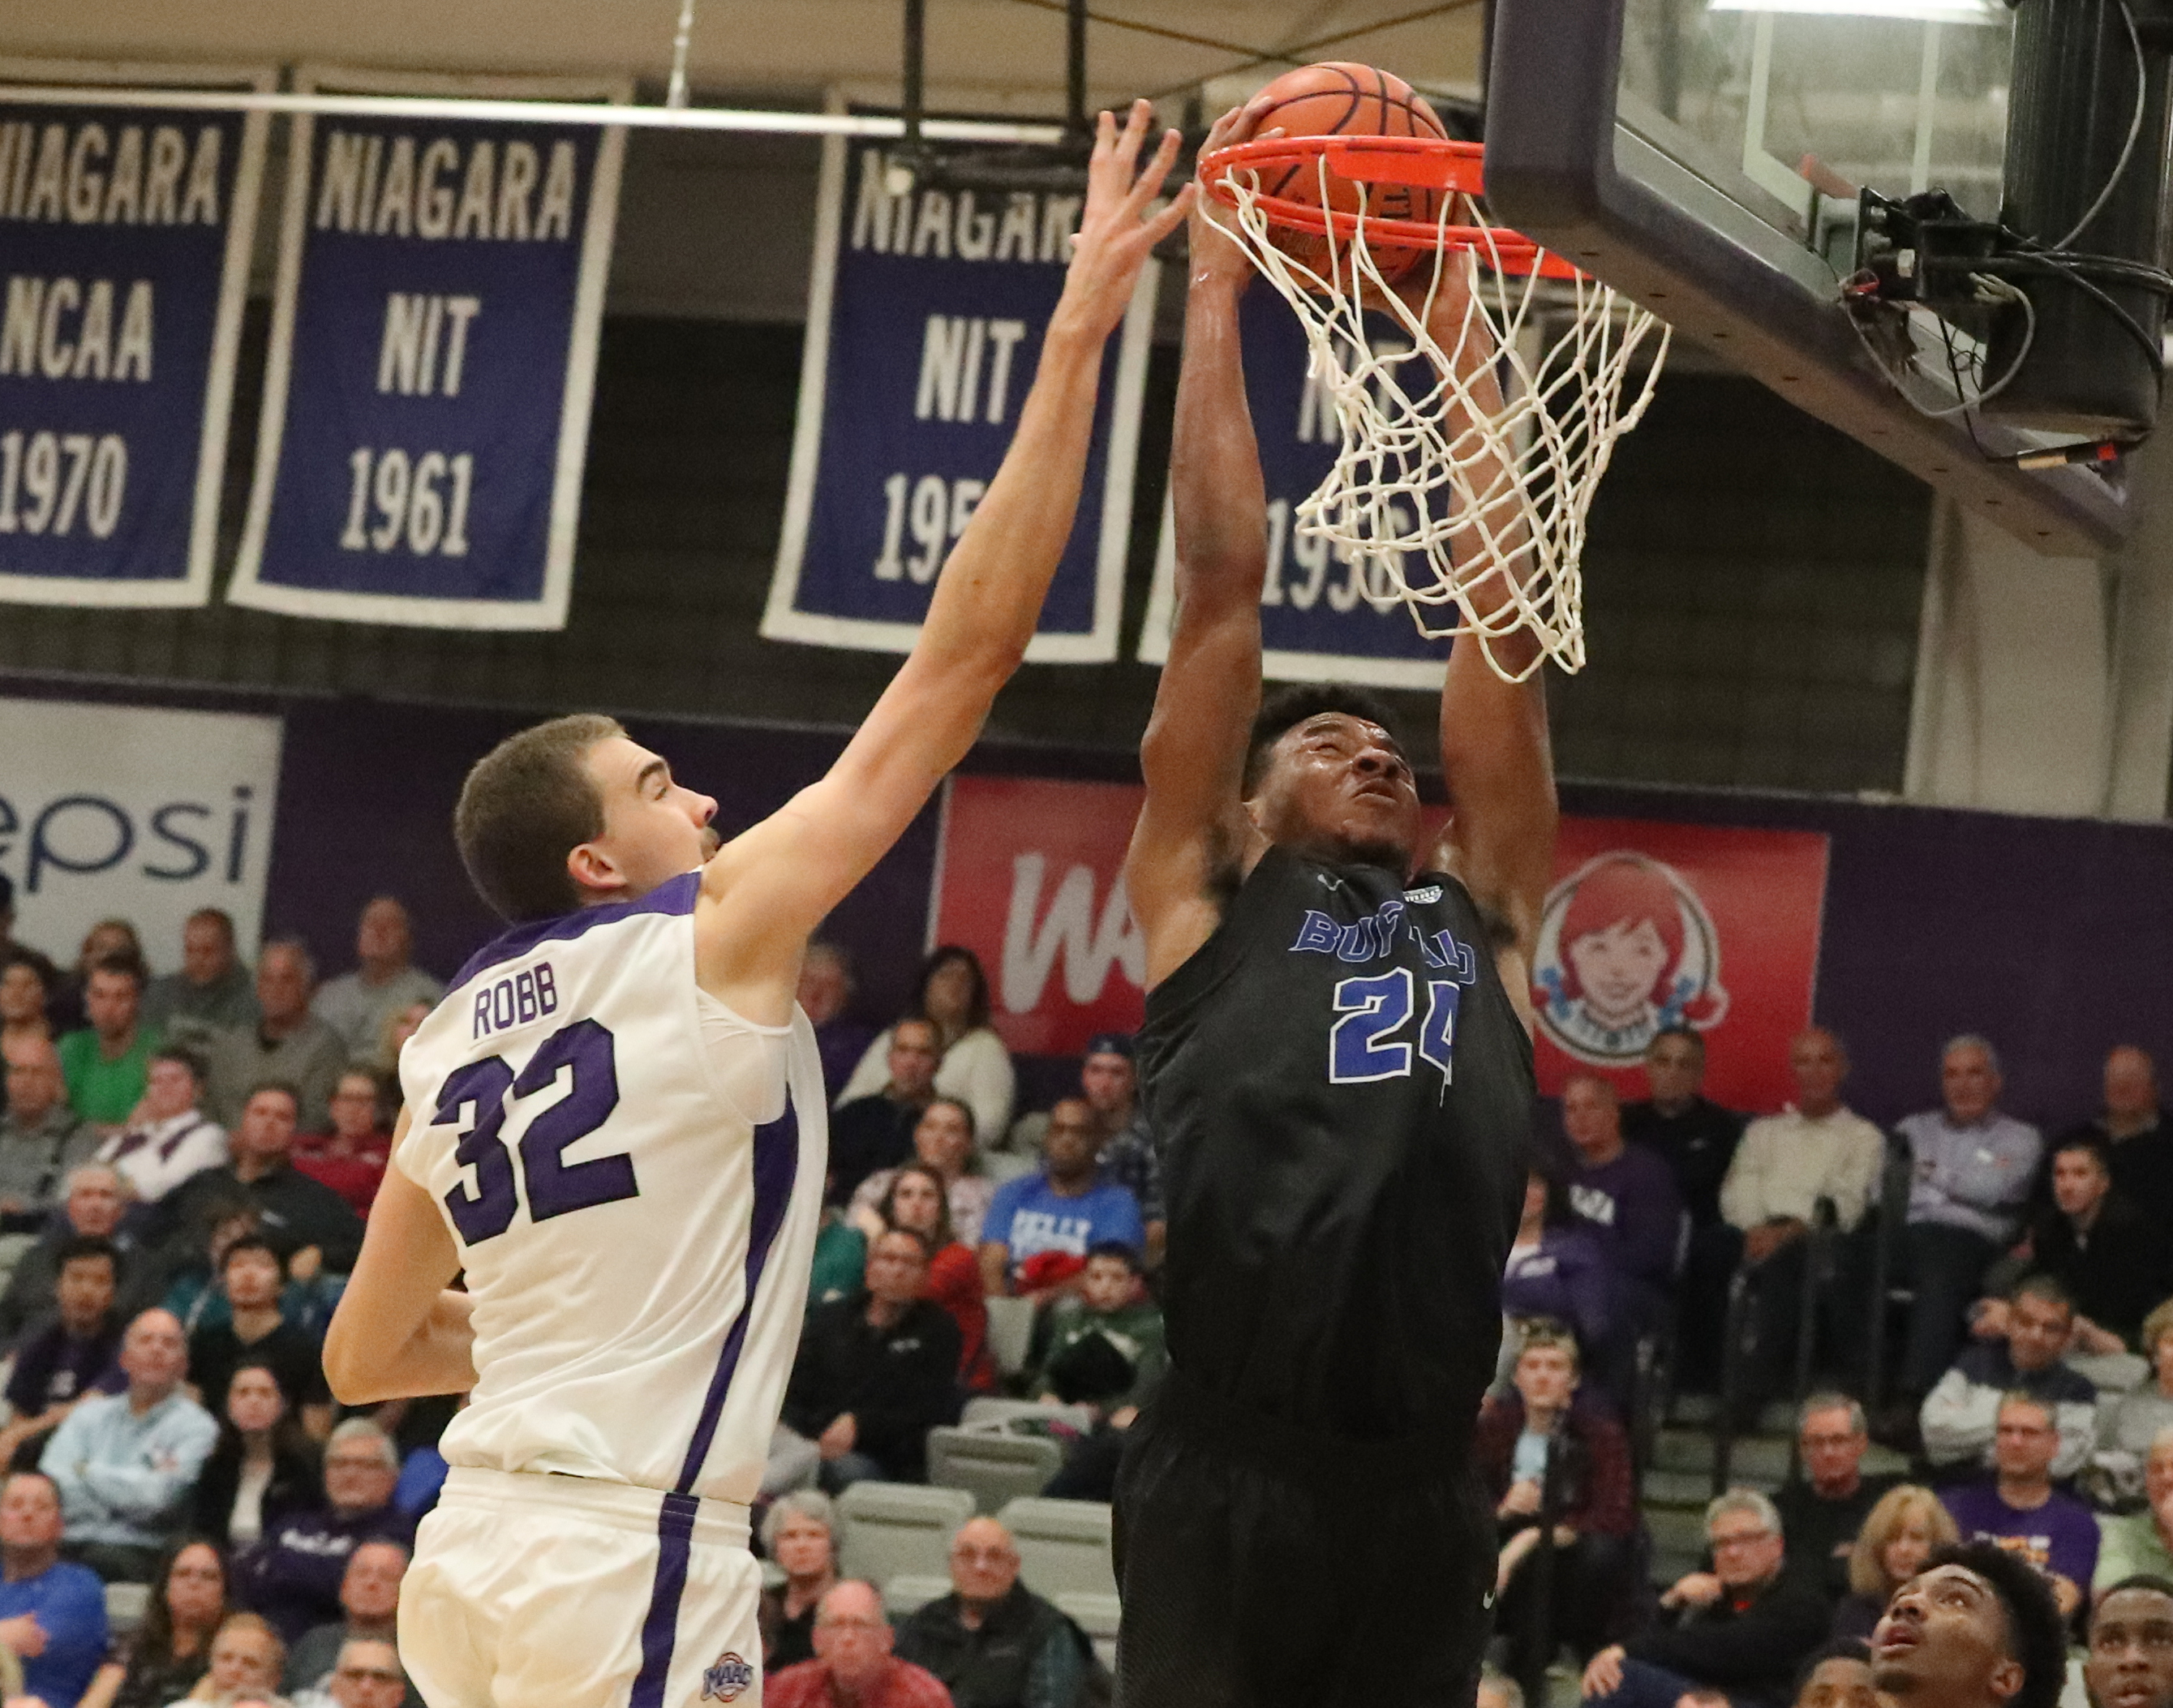 Buffalo Bulls forward Quate McKinzie dunks over Niagara's Dominic Robb in the second half at Gallagher Center Friday (James P. McCoy/Buffalo News)